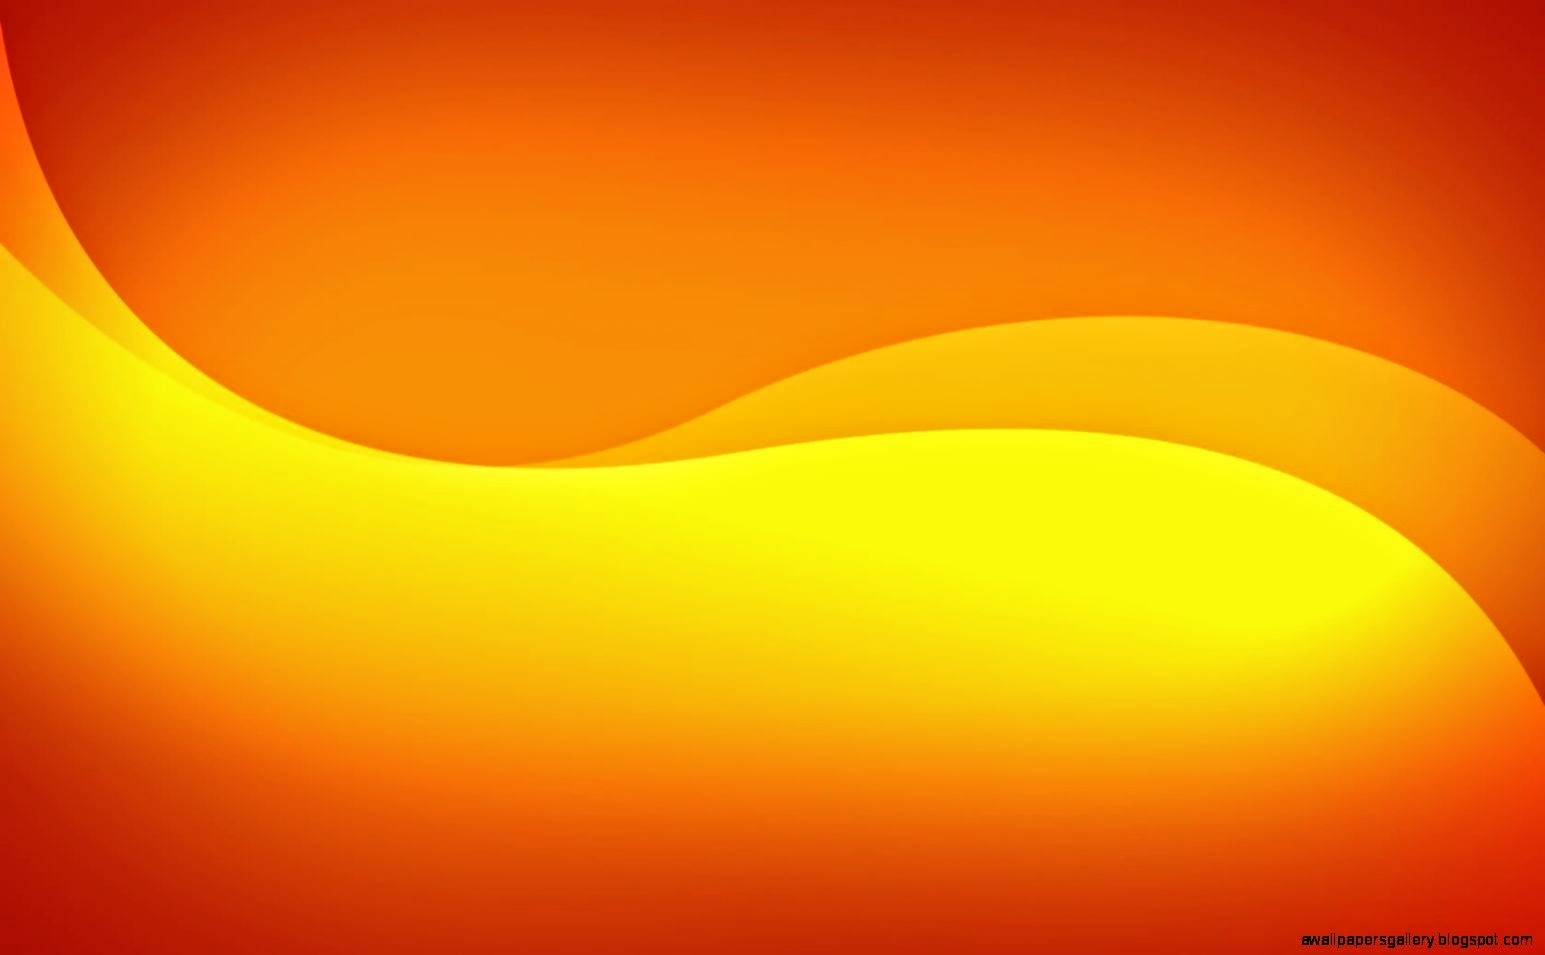 abstract orange wallpapers wallpaperjpg - photo #8